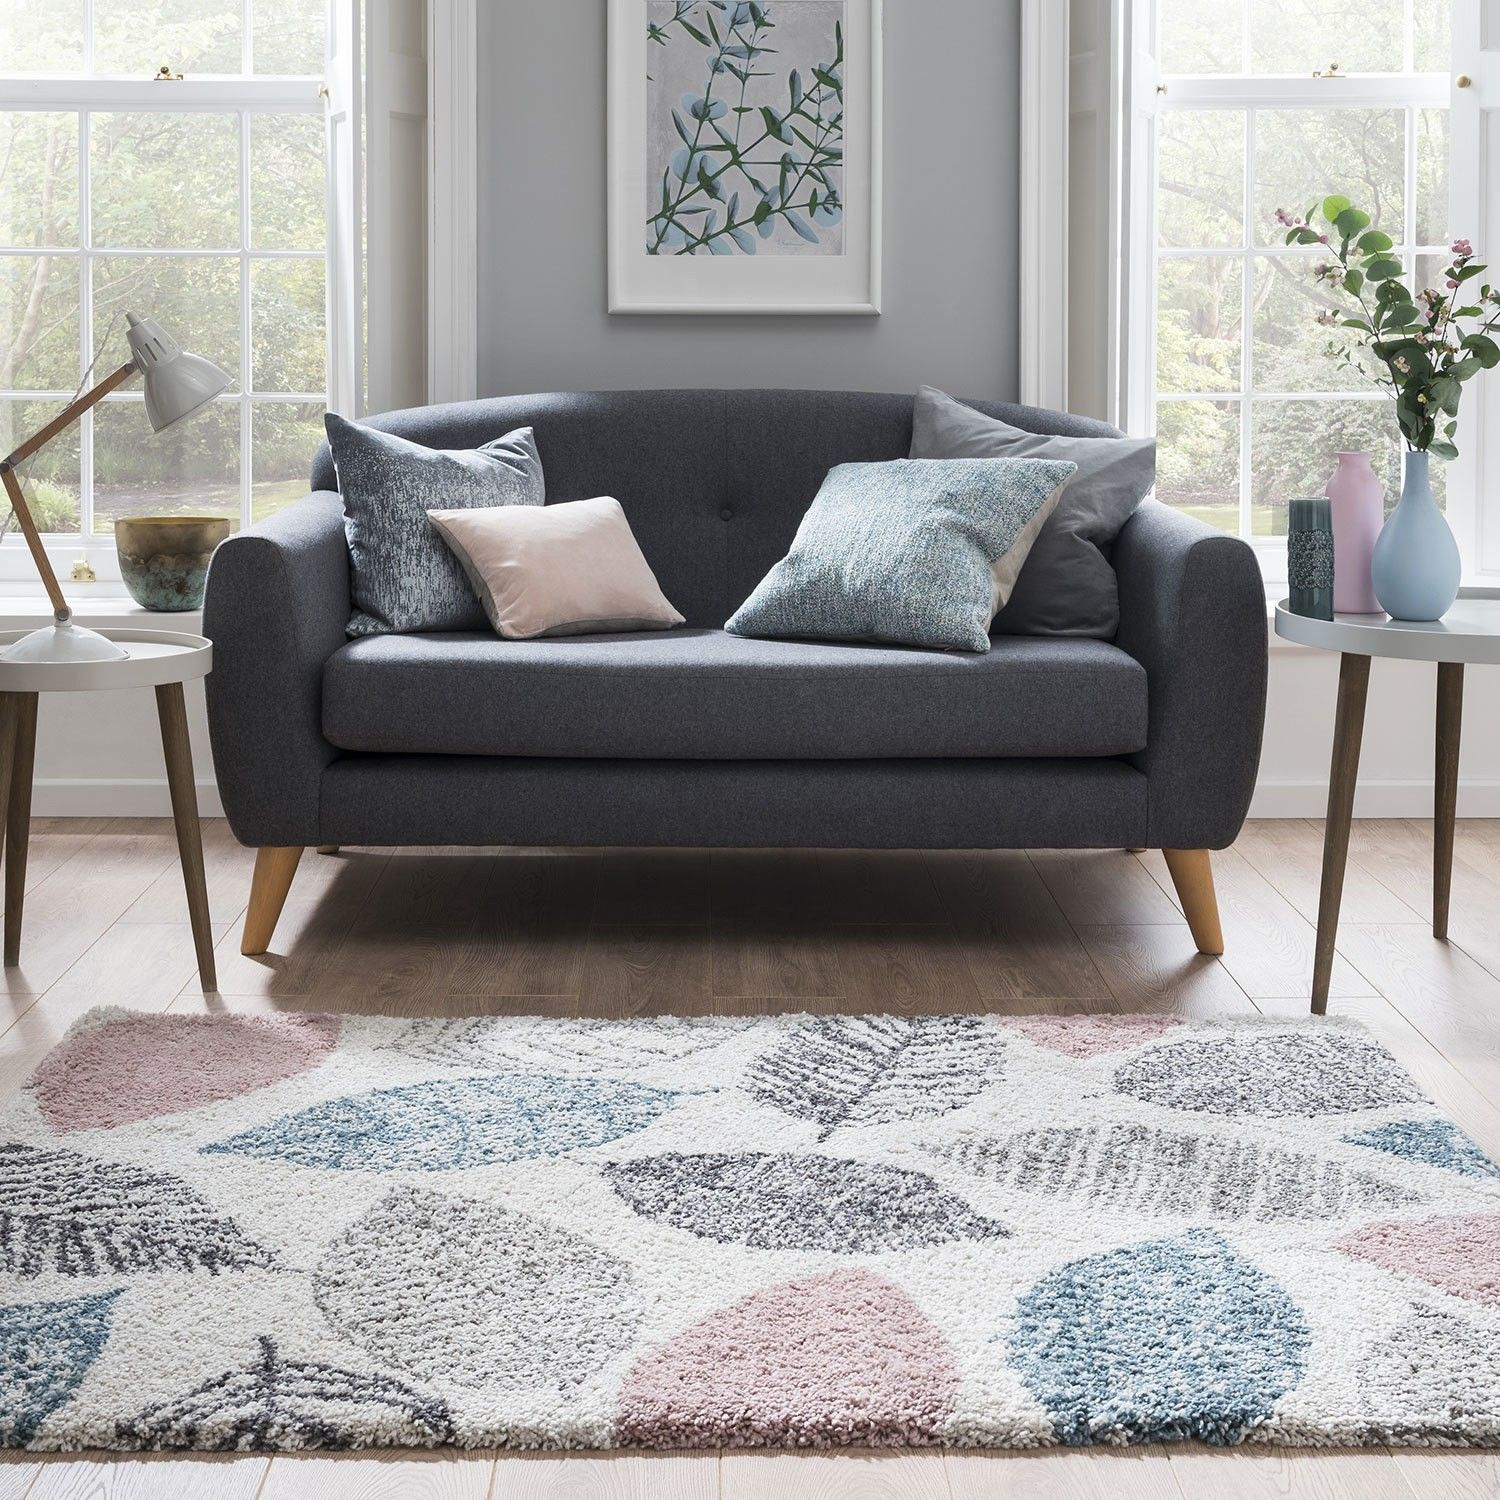 Noble Leaf Pastel Rug Home decor, Unique rugs, Home rugs